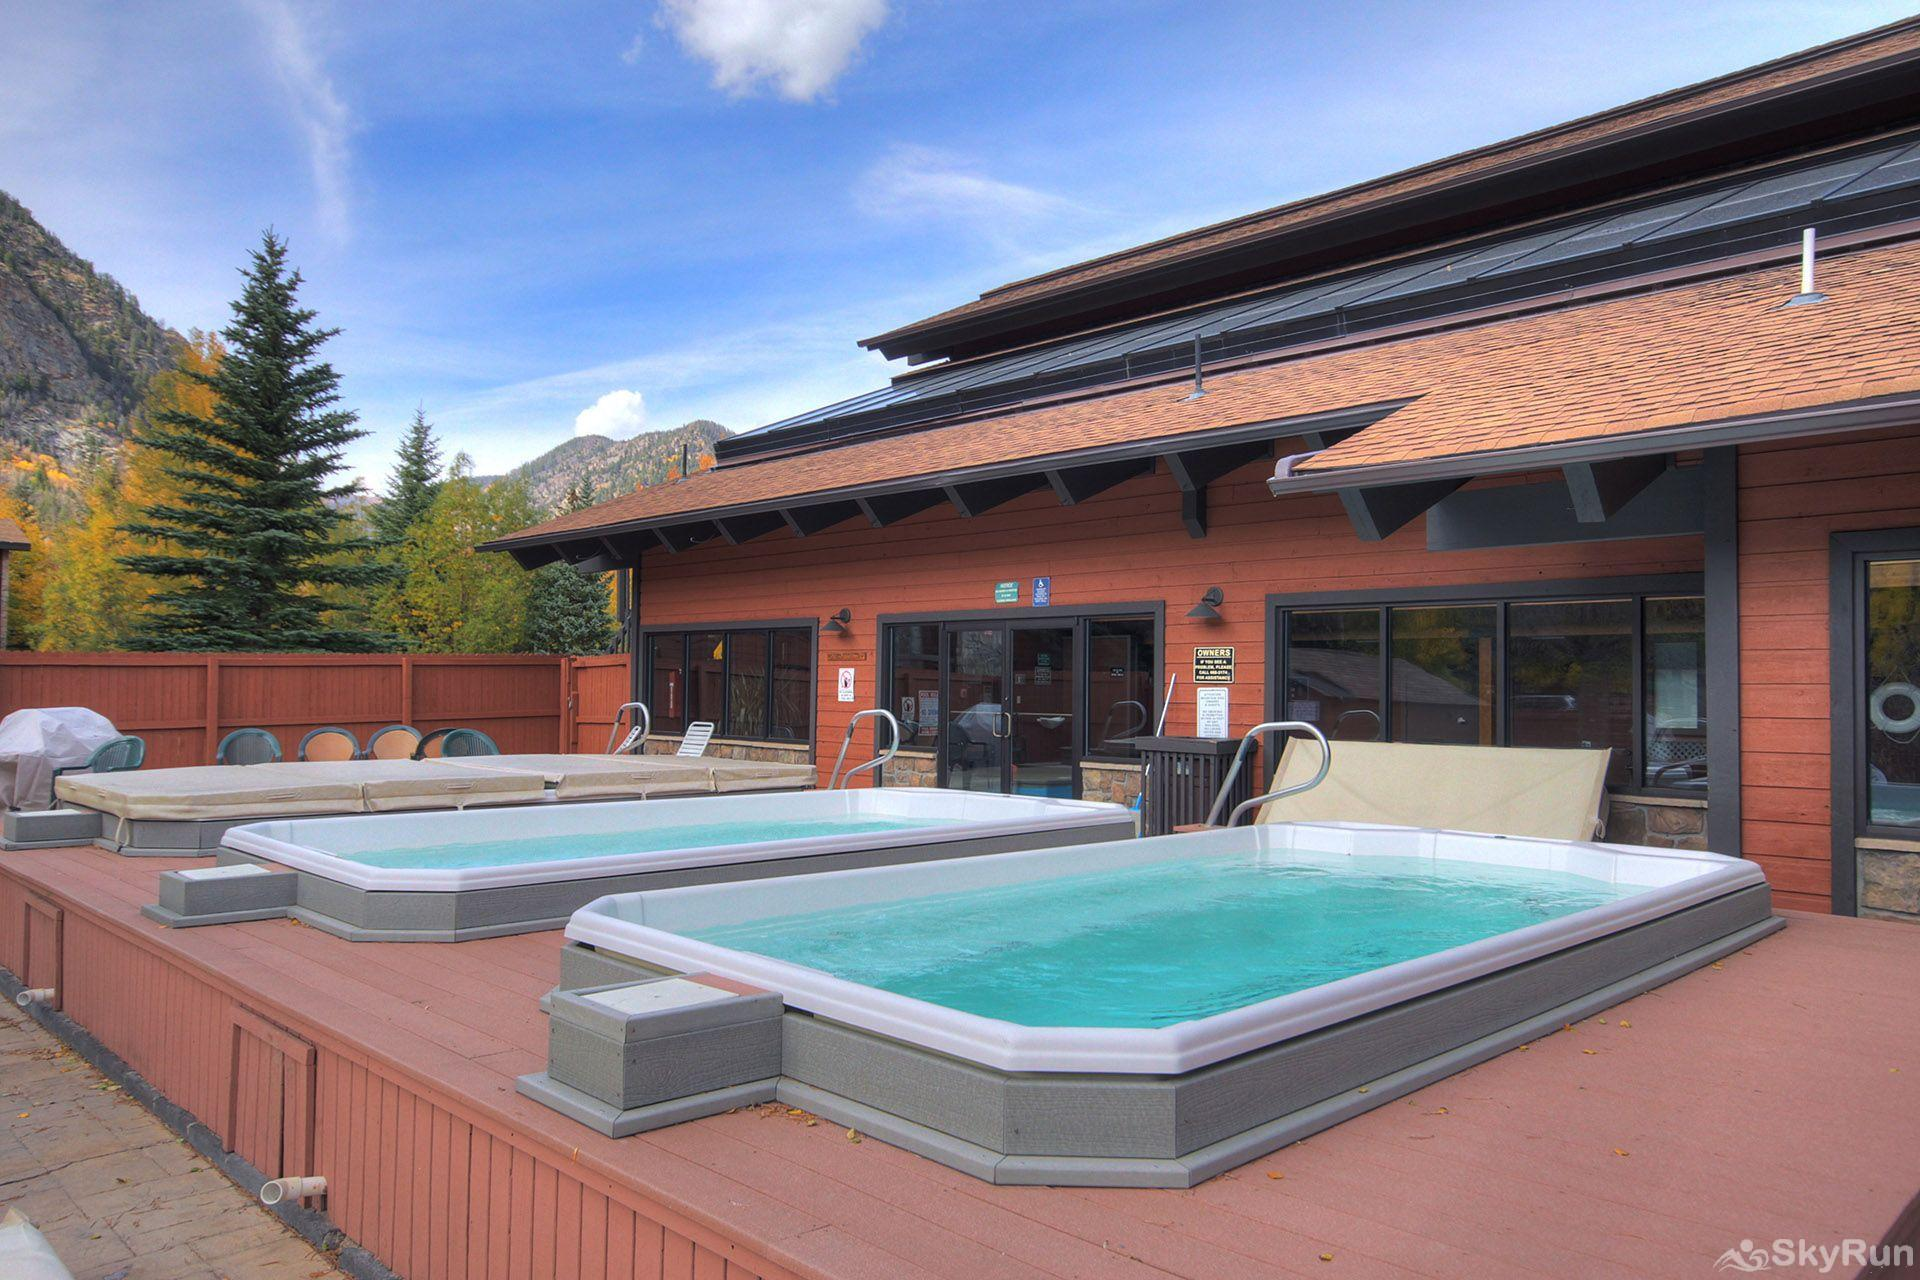 241C Mountain Side 2BR 2BA Three Outdoor Hot Tubs!